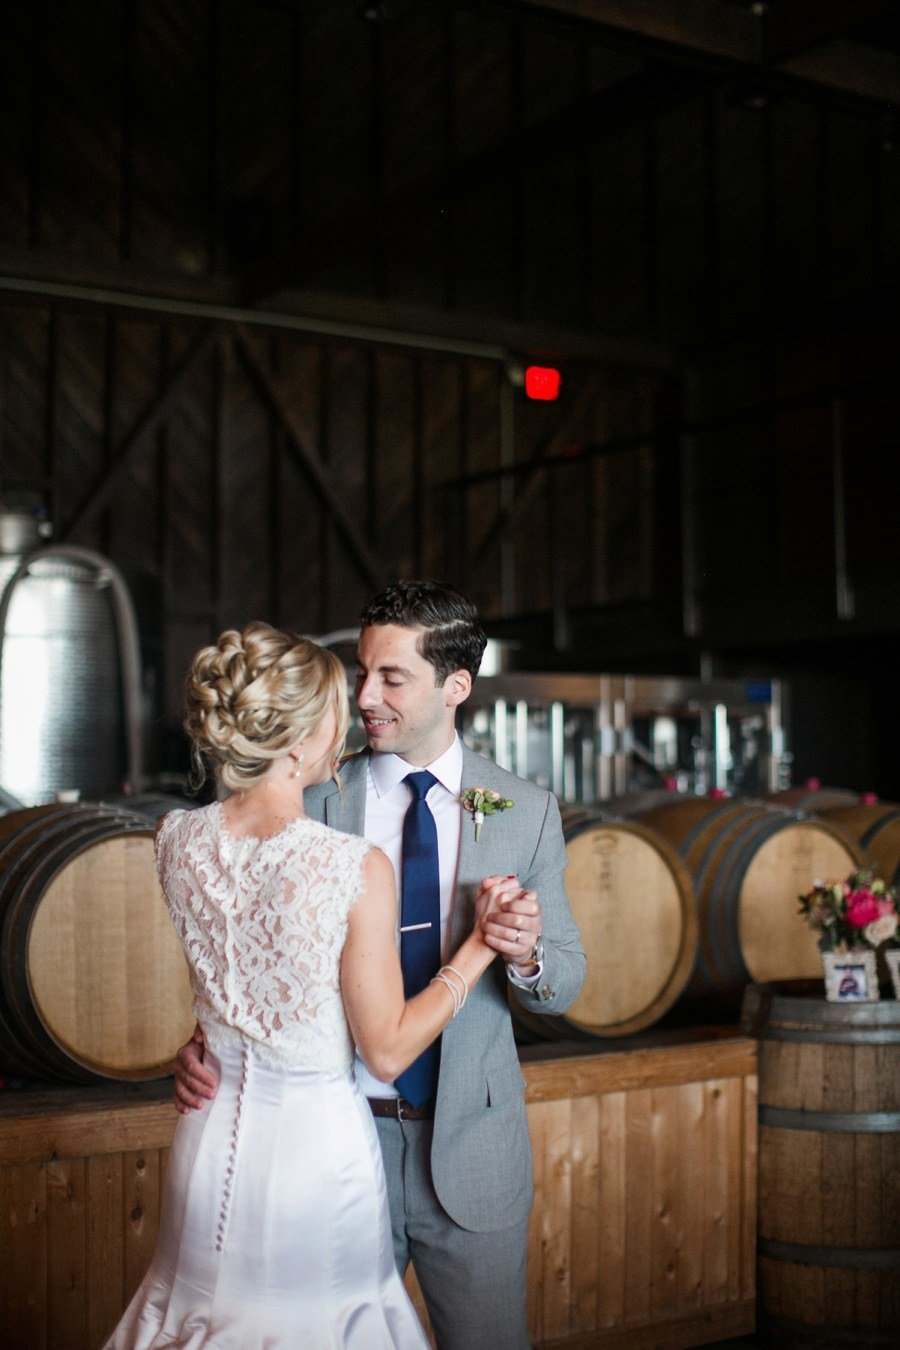 saltwater_farm_vineyard_wedding_stonington_ct_0090